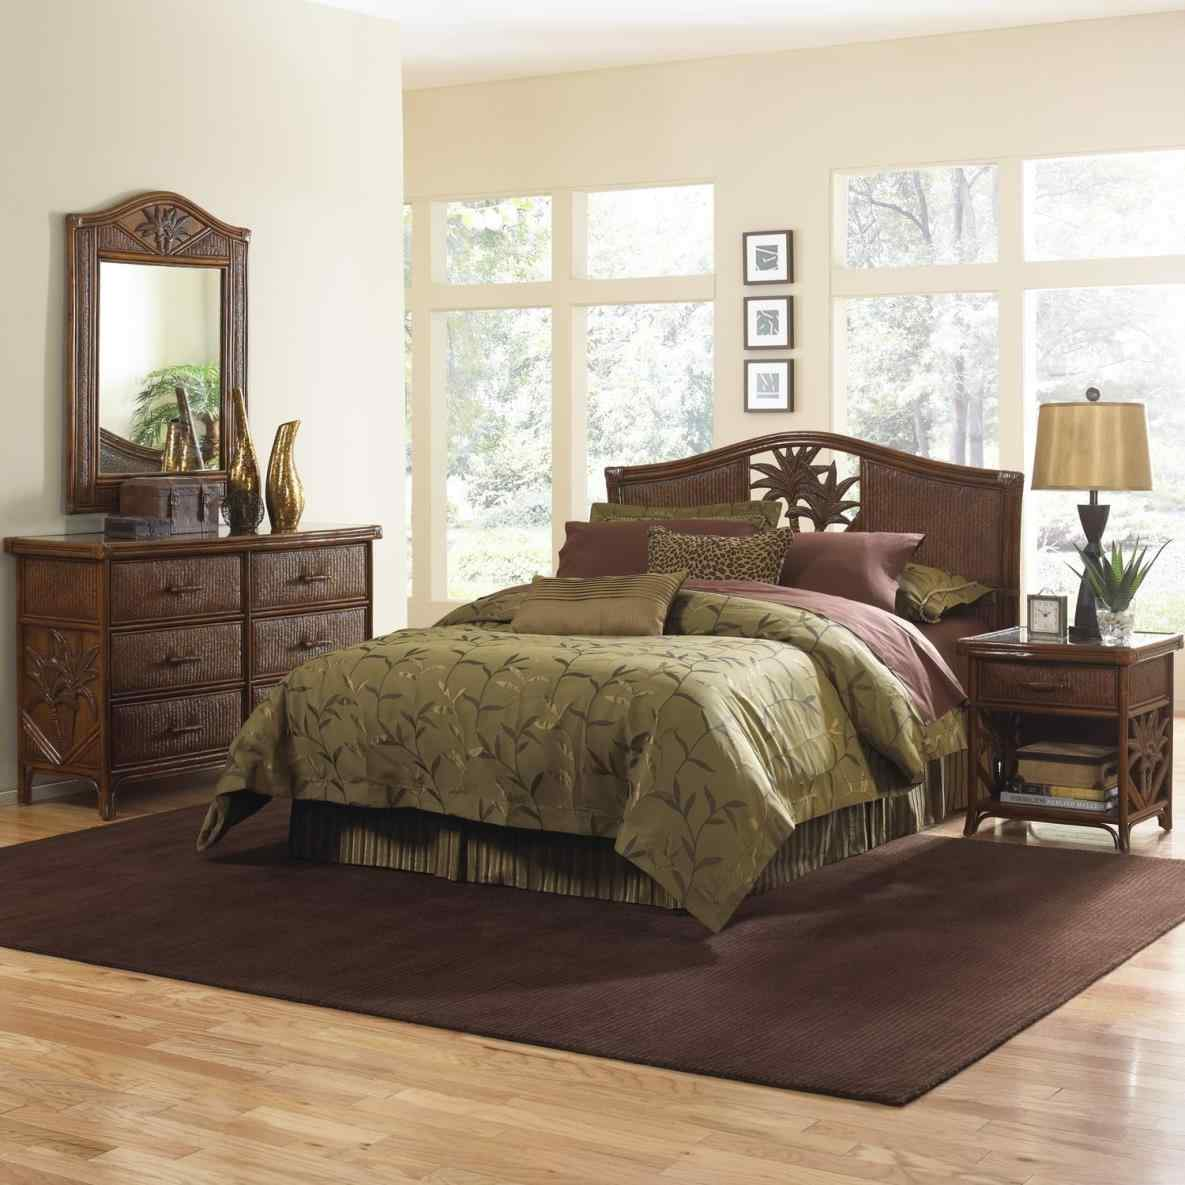 black bamboo bedroom furniture photo - 7